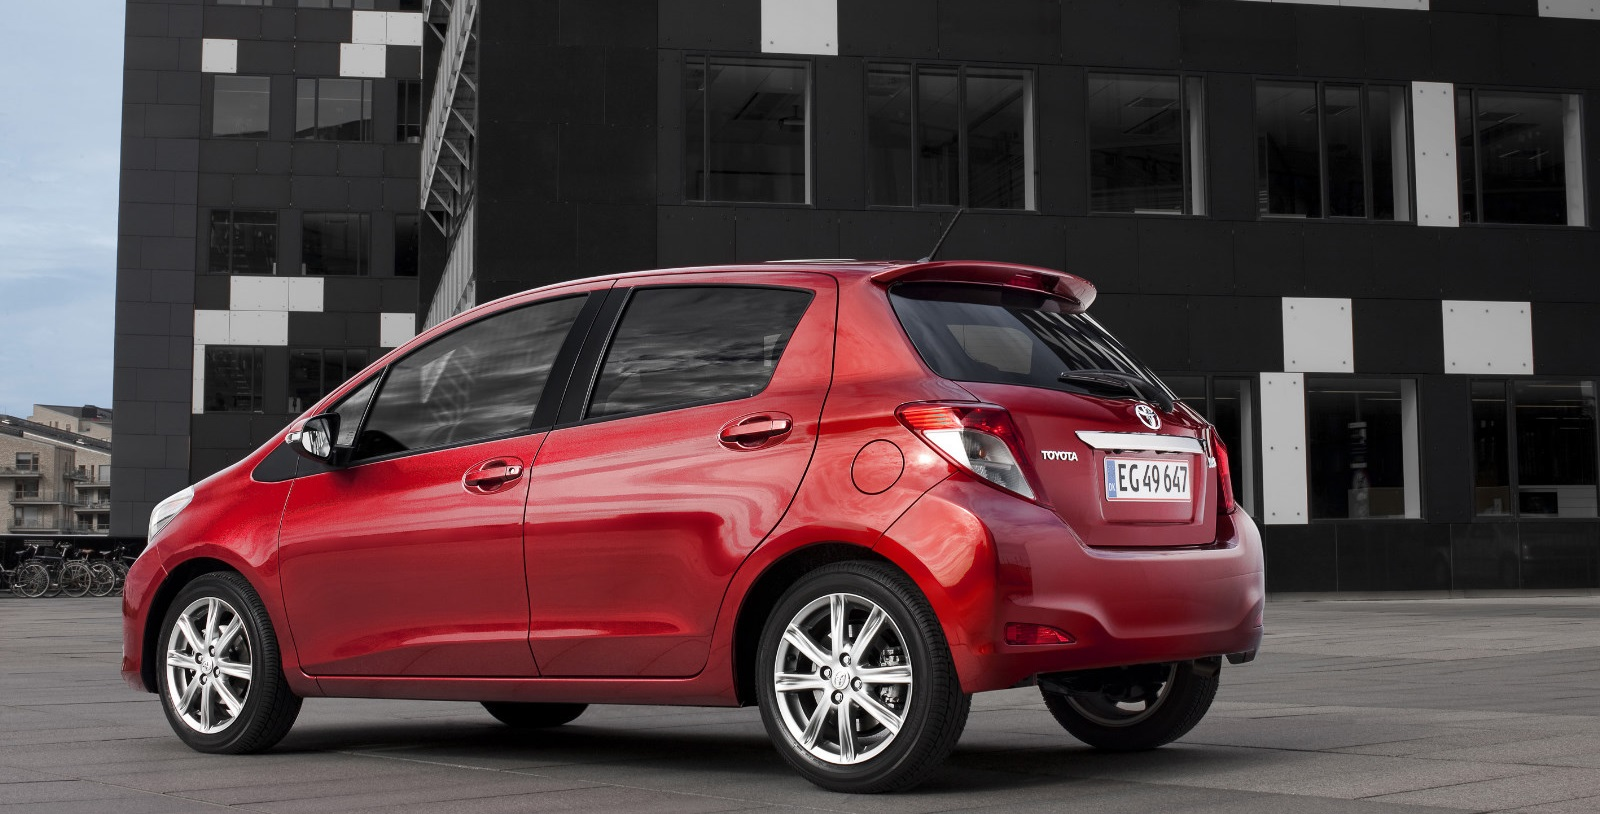 2019 Toyota Yaris photo - 3